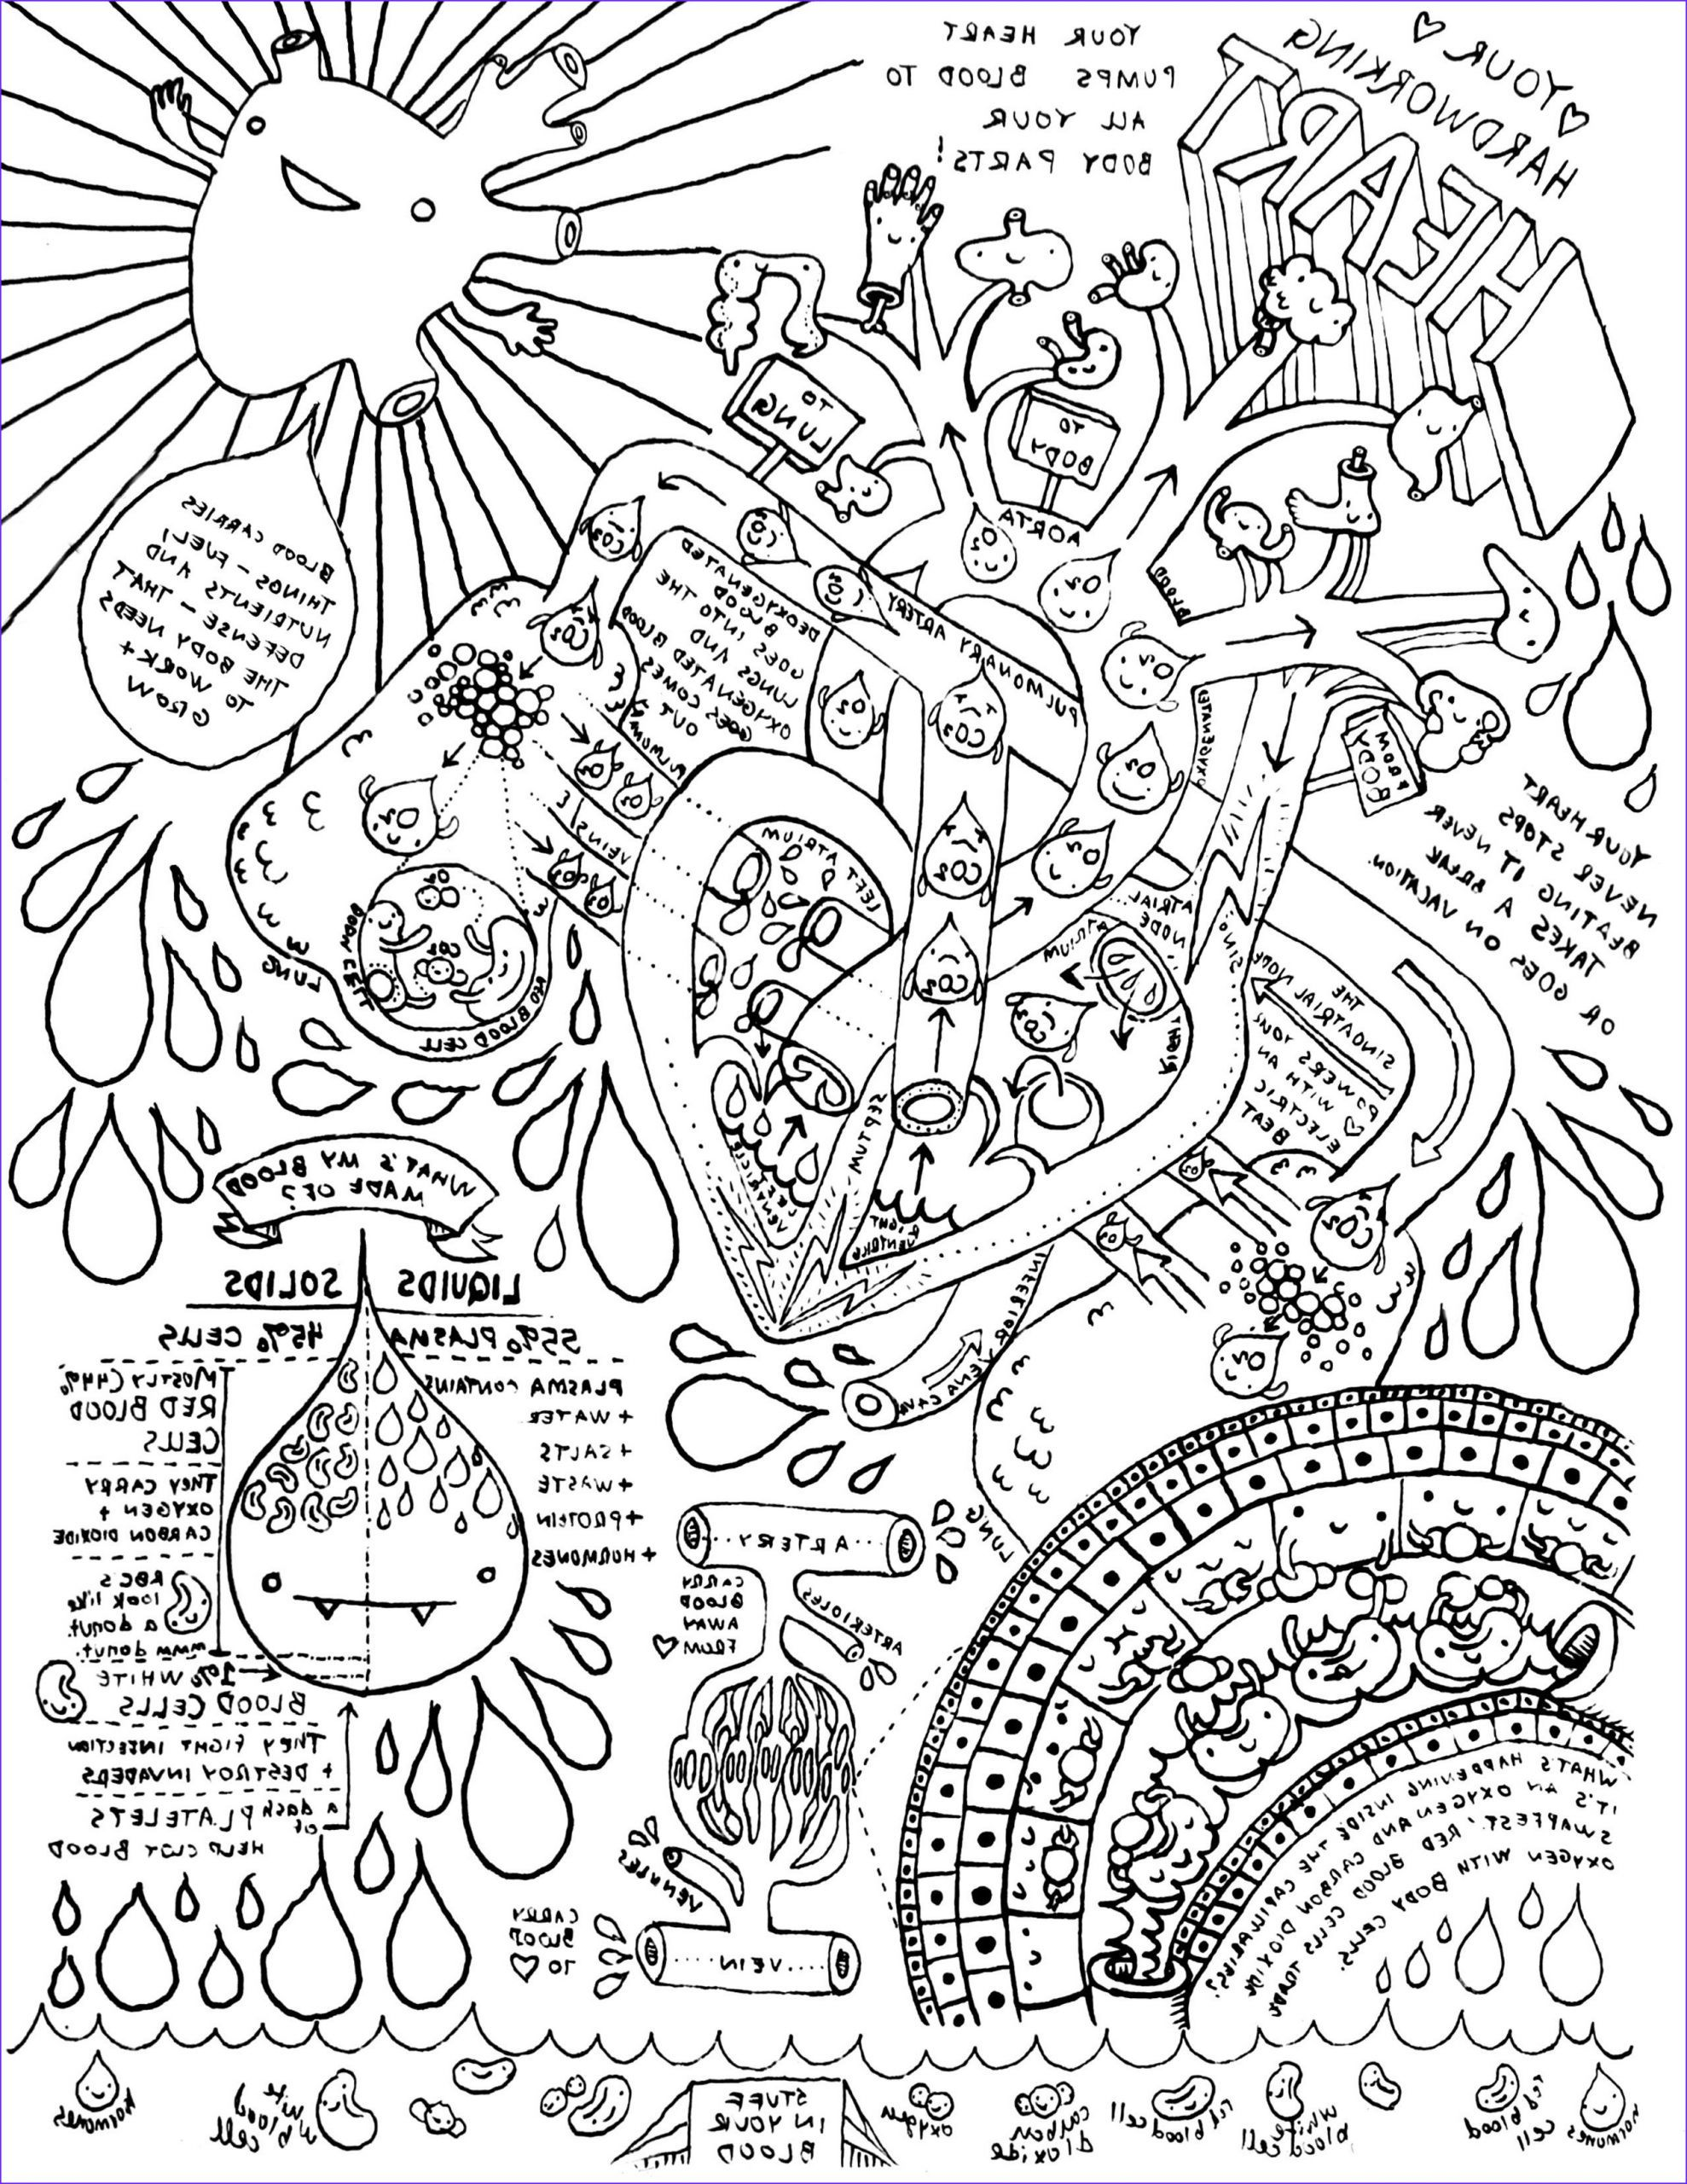 13 Cool Anatomy and Physiology Coloring Workbook Body Tissues graphy Coloring Page for Kids